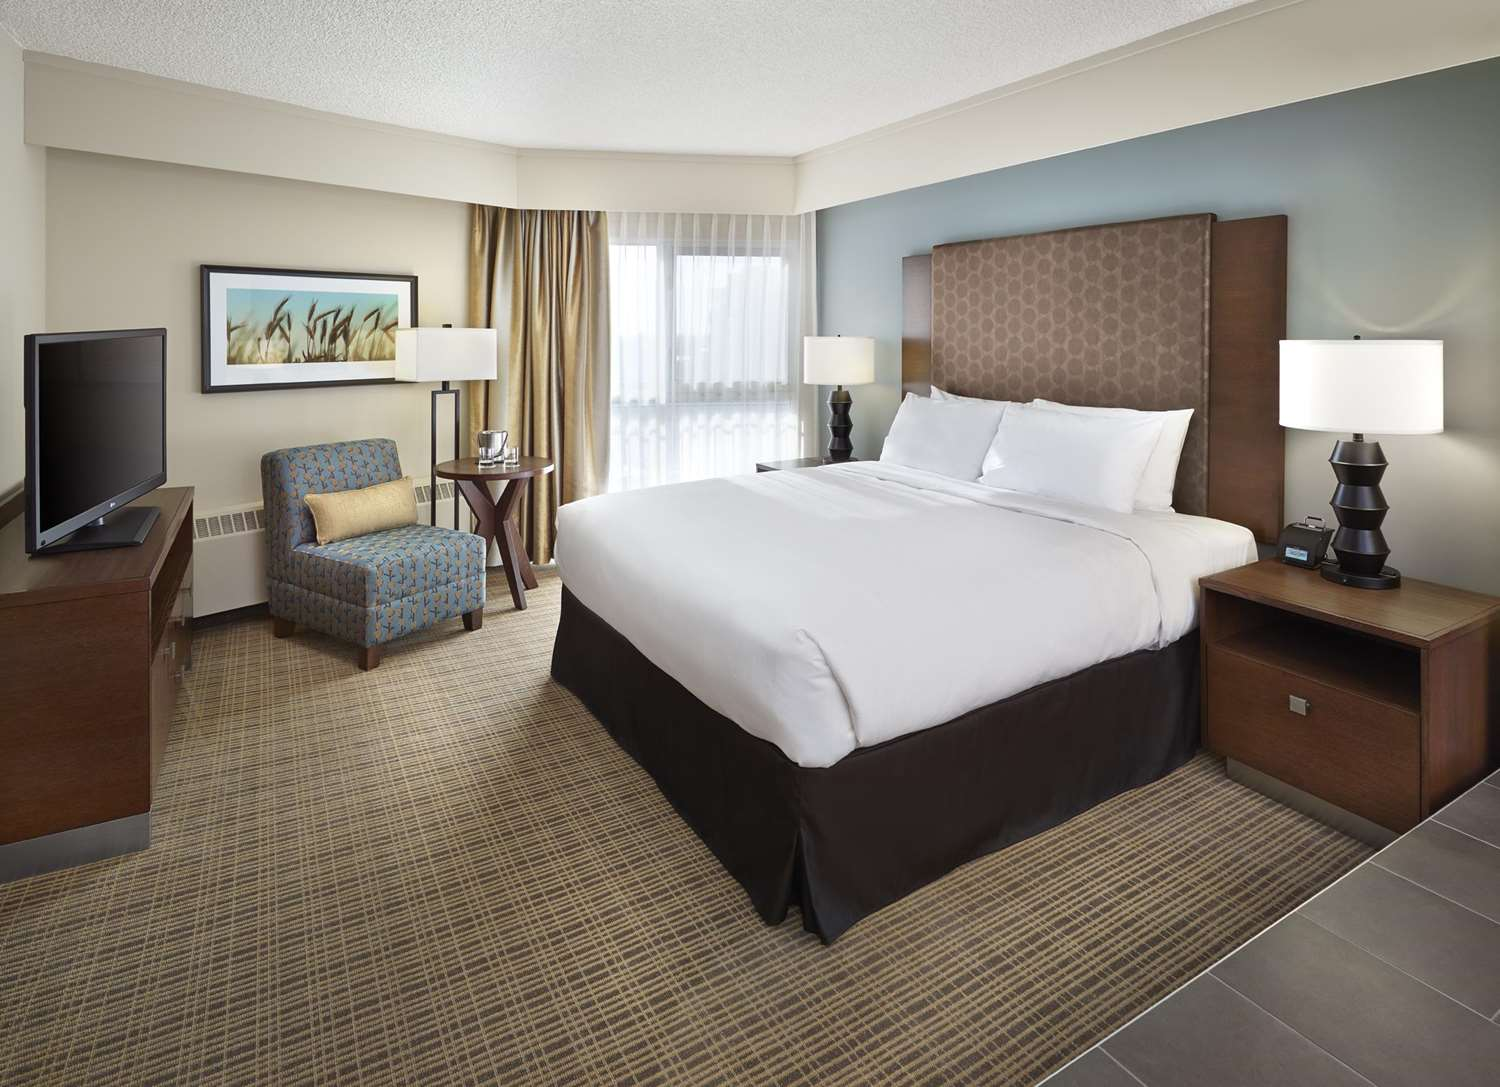 Room - DoubleTree by Hilton Hotel & Conference Center Regina